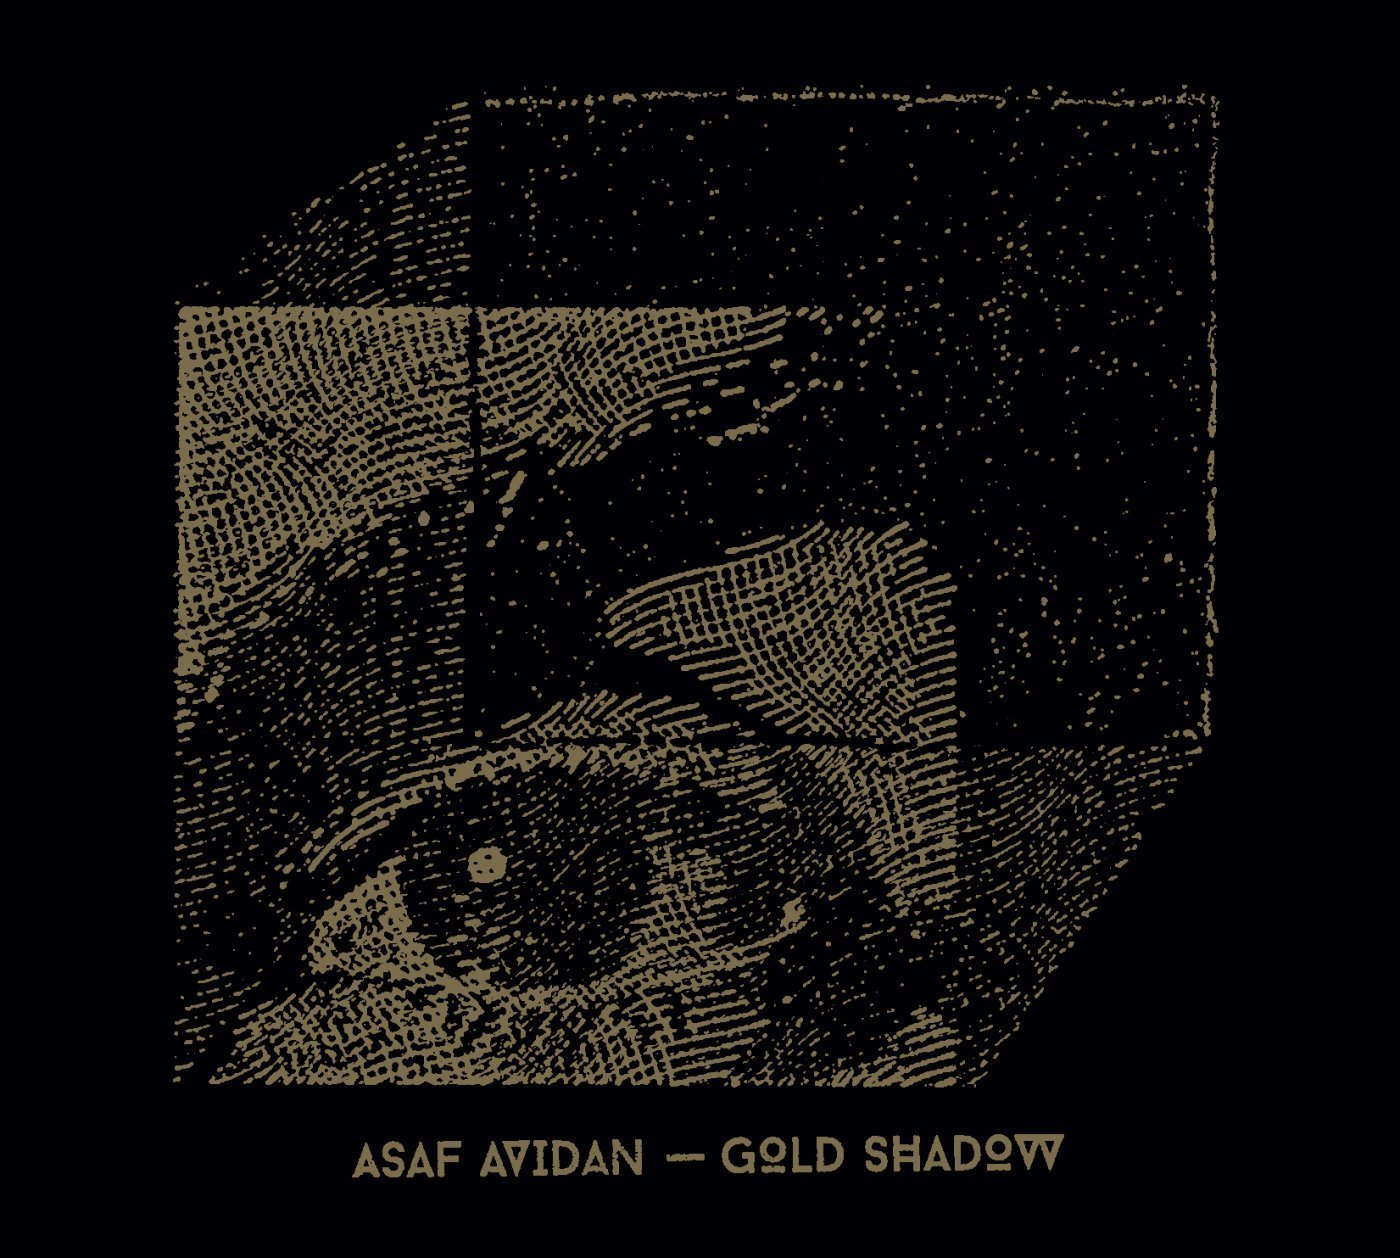 Gold Shadow - Asaf Avidan